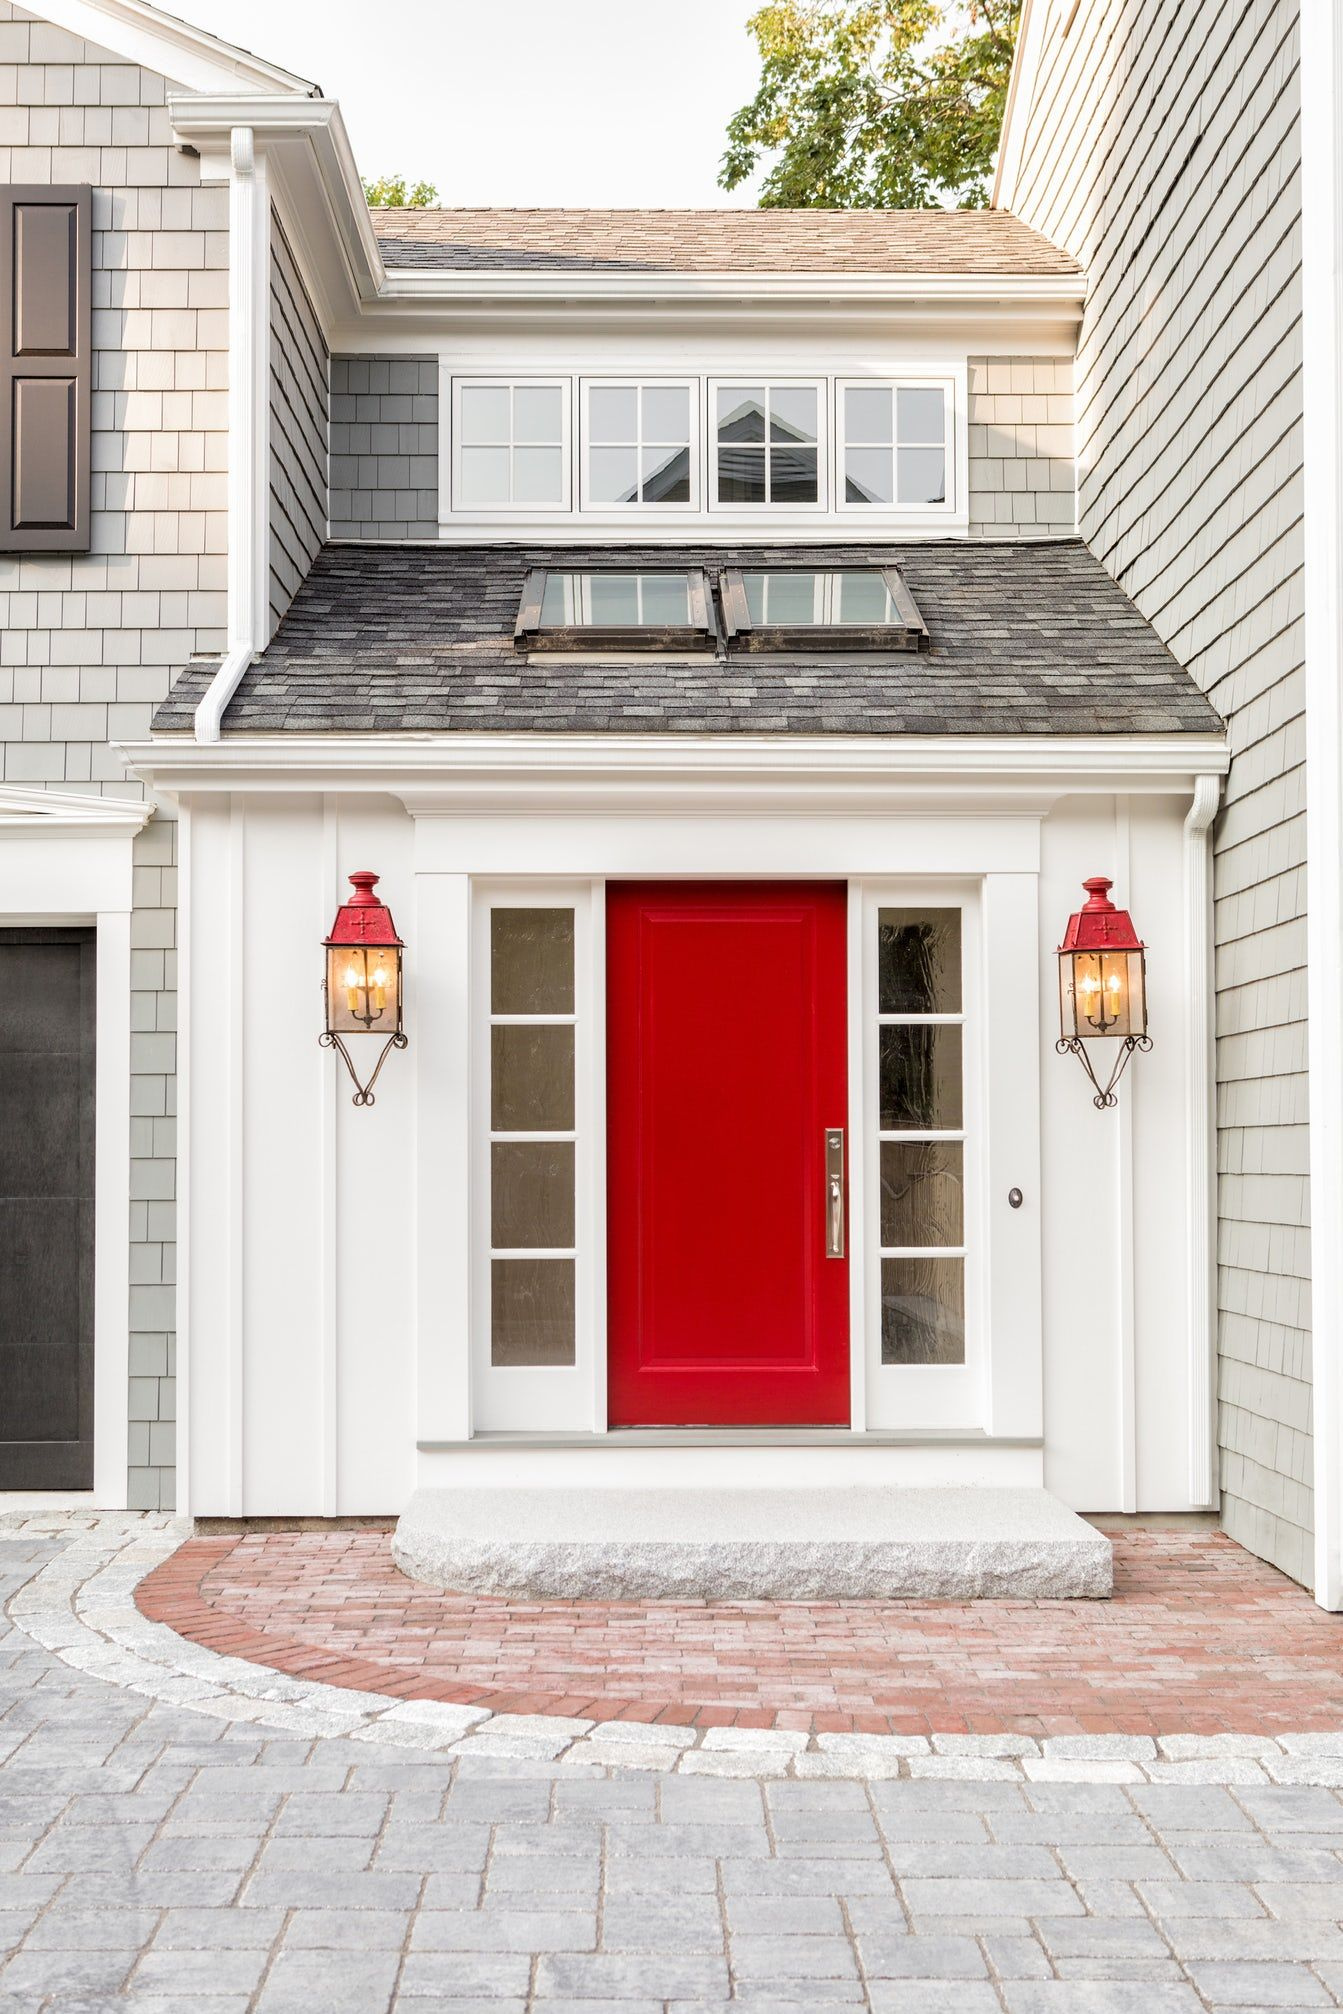 & 14+ Best Front Door Paint Colors - Paint Ideas for Front Doors pezcame.com